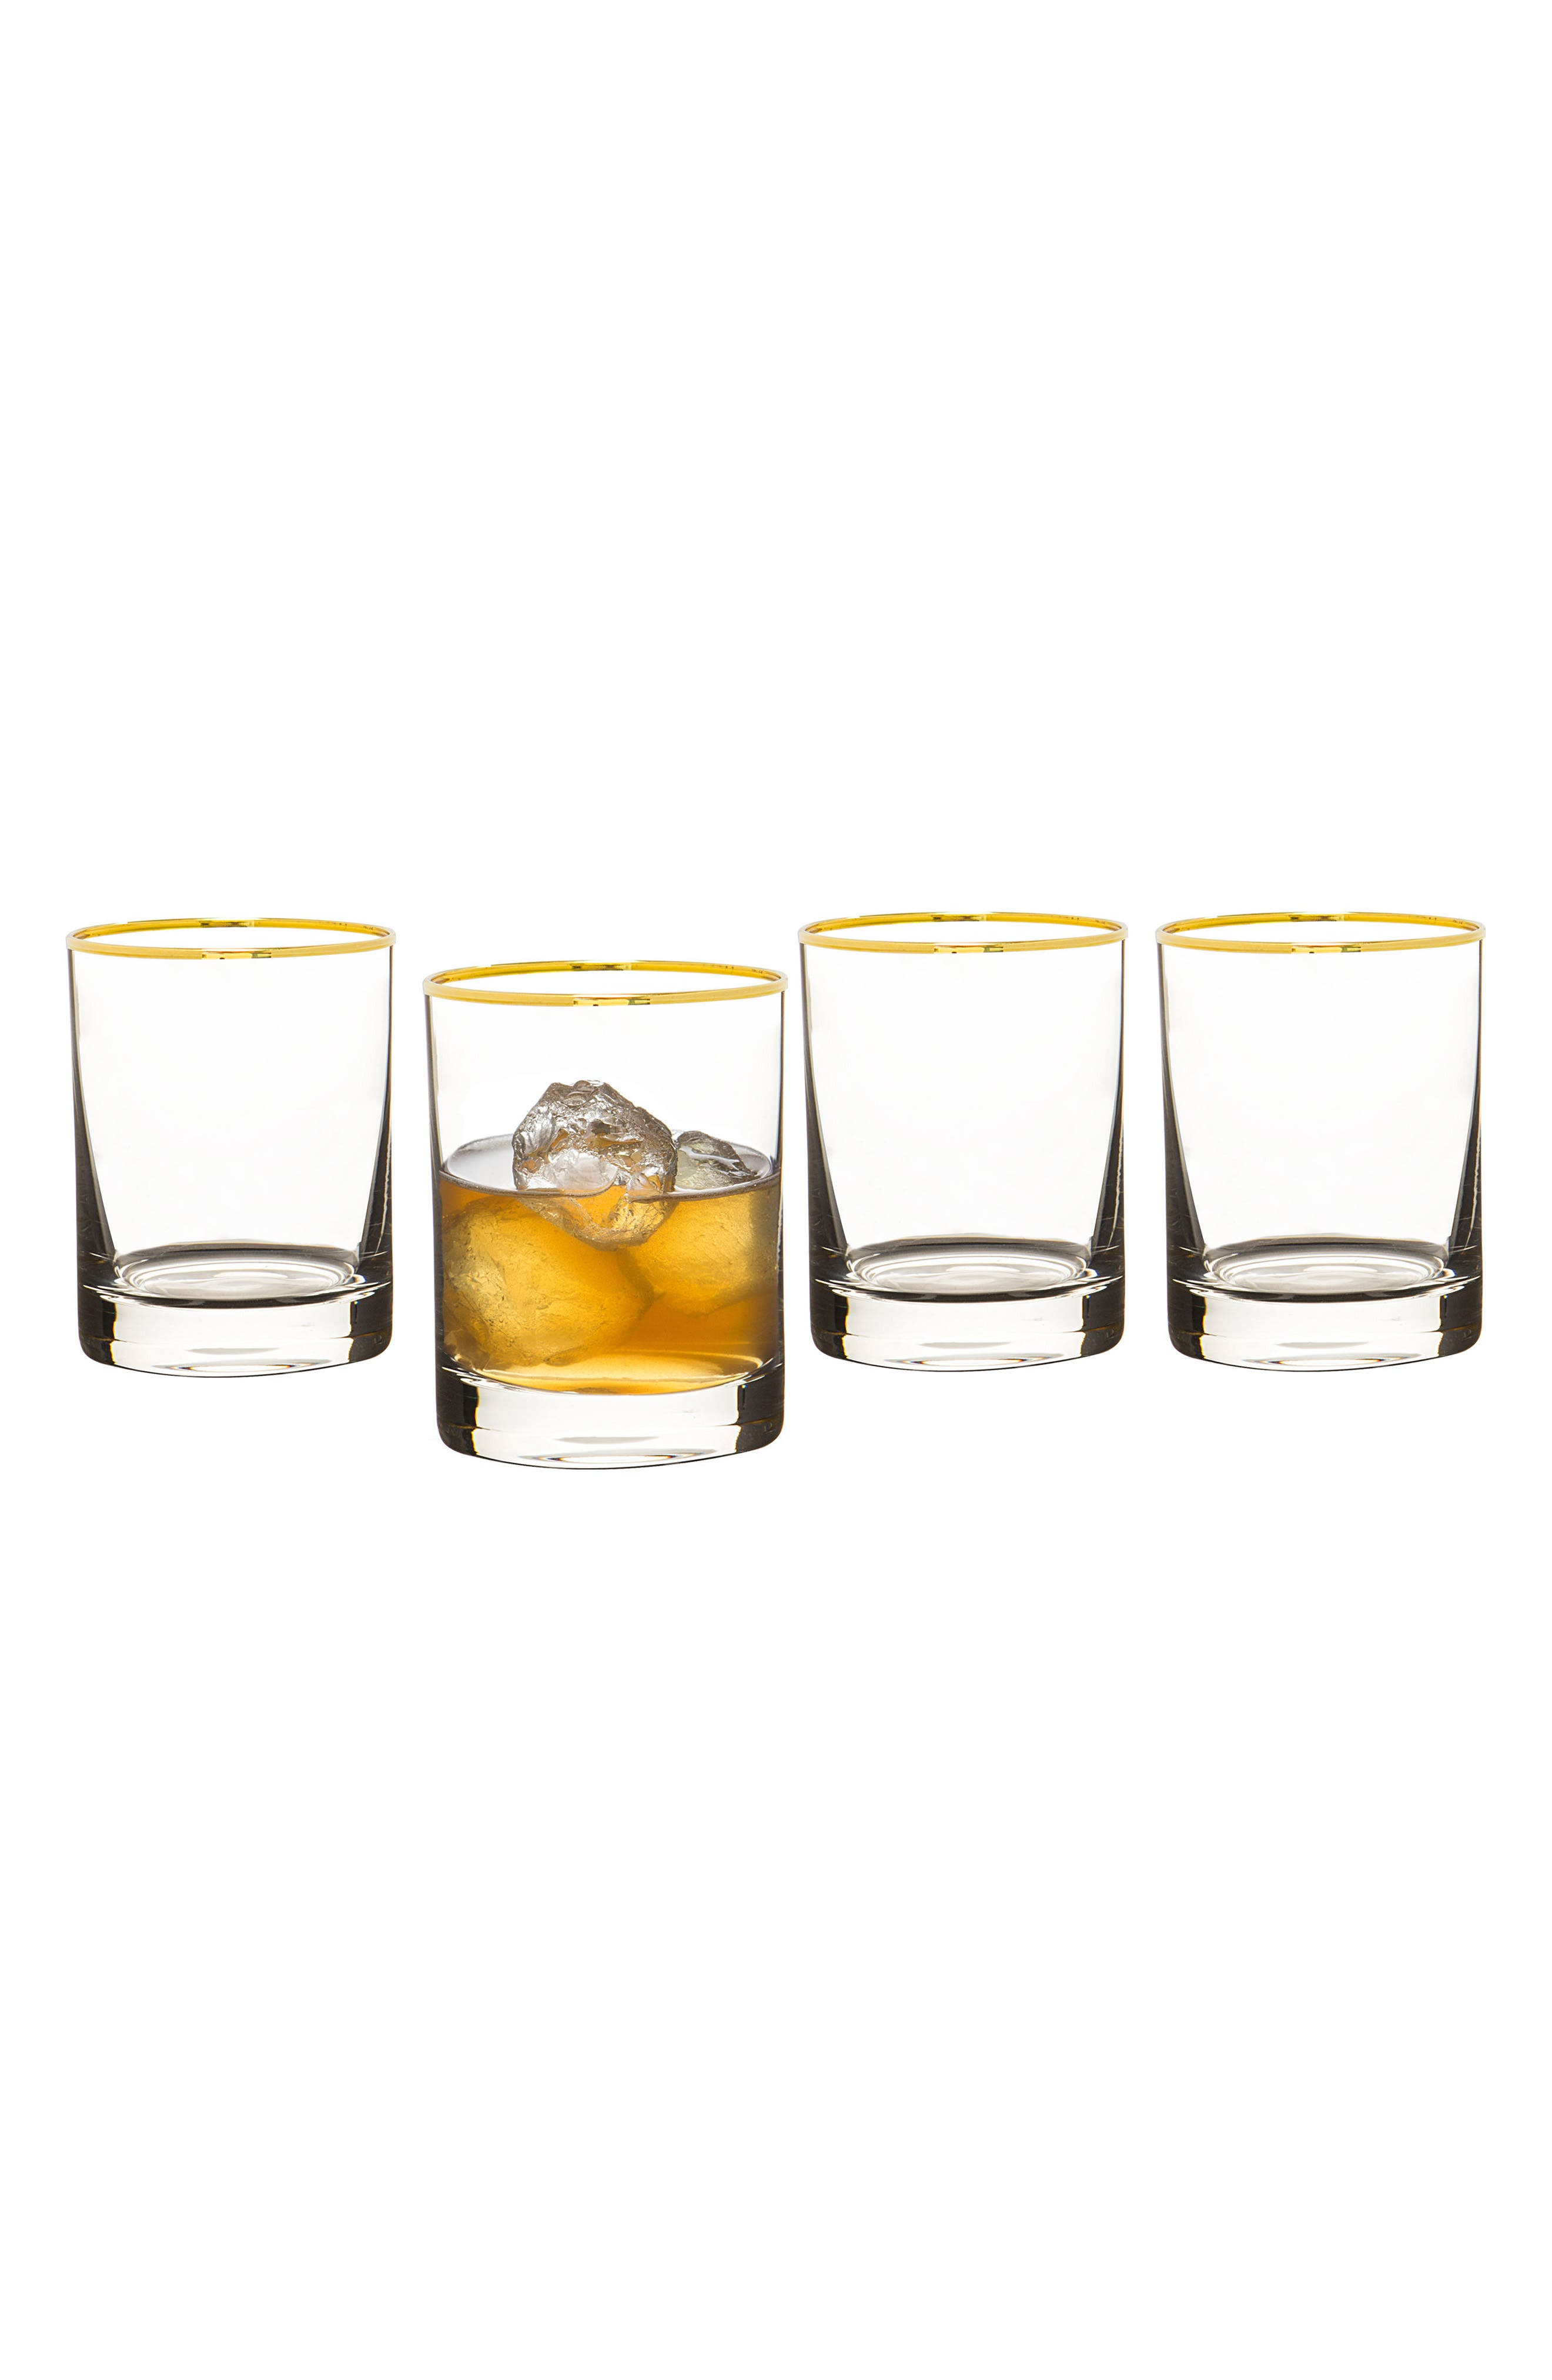 Monogram Set of 4 Double Old Fashioned Glasses,                             Main thumbnail 1, color,                             710